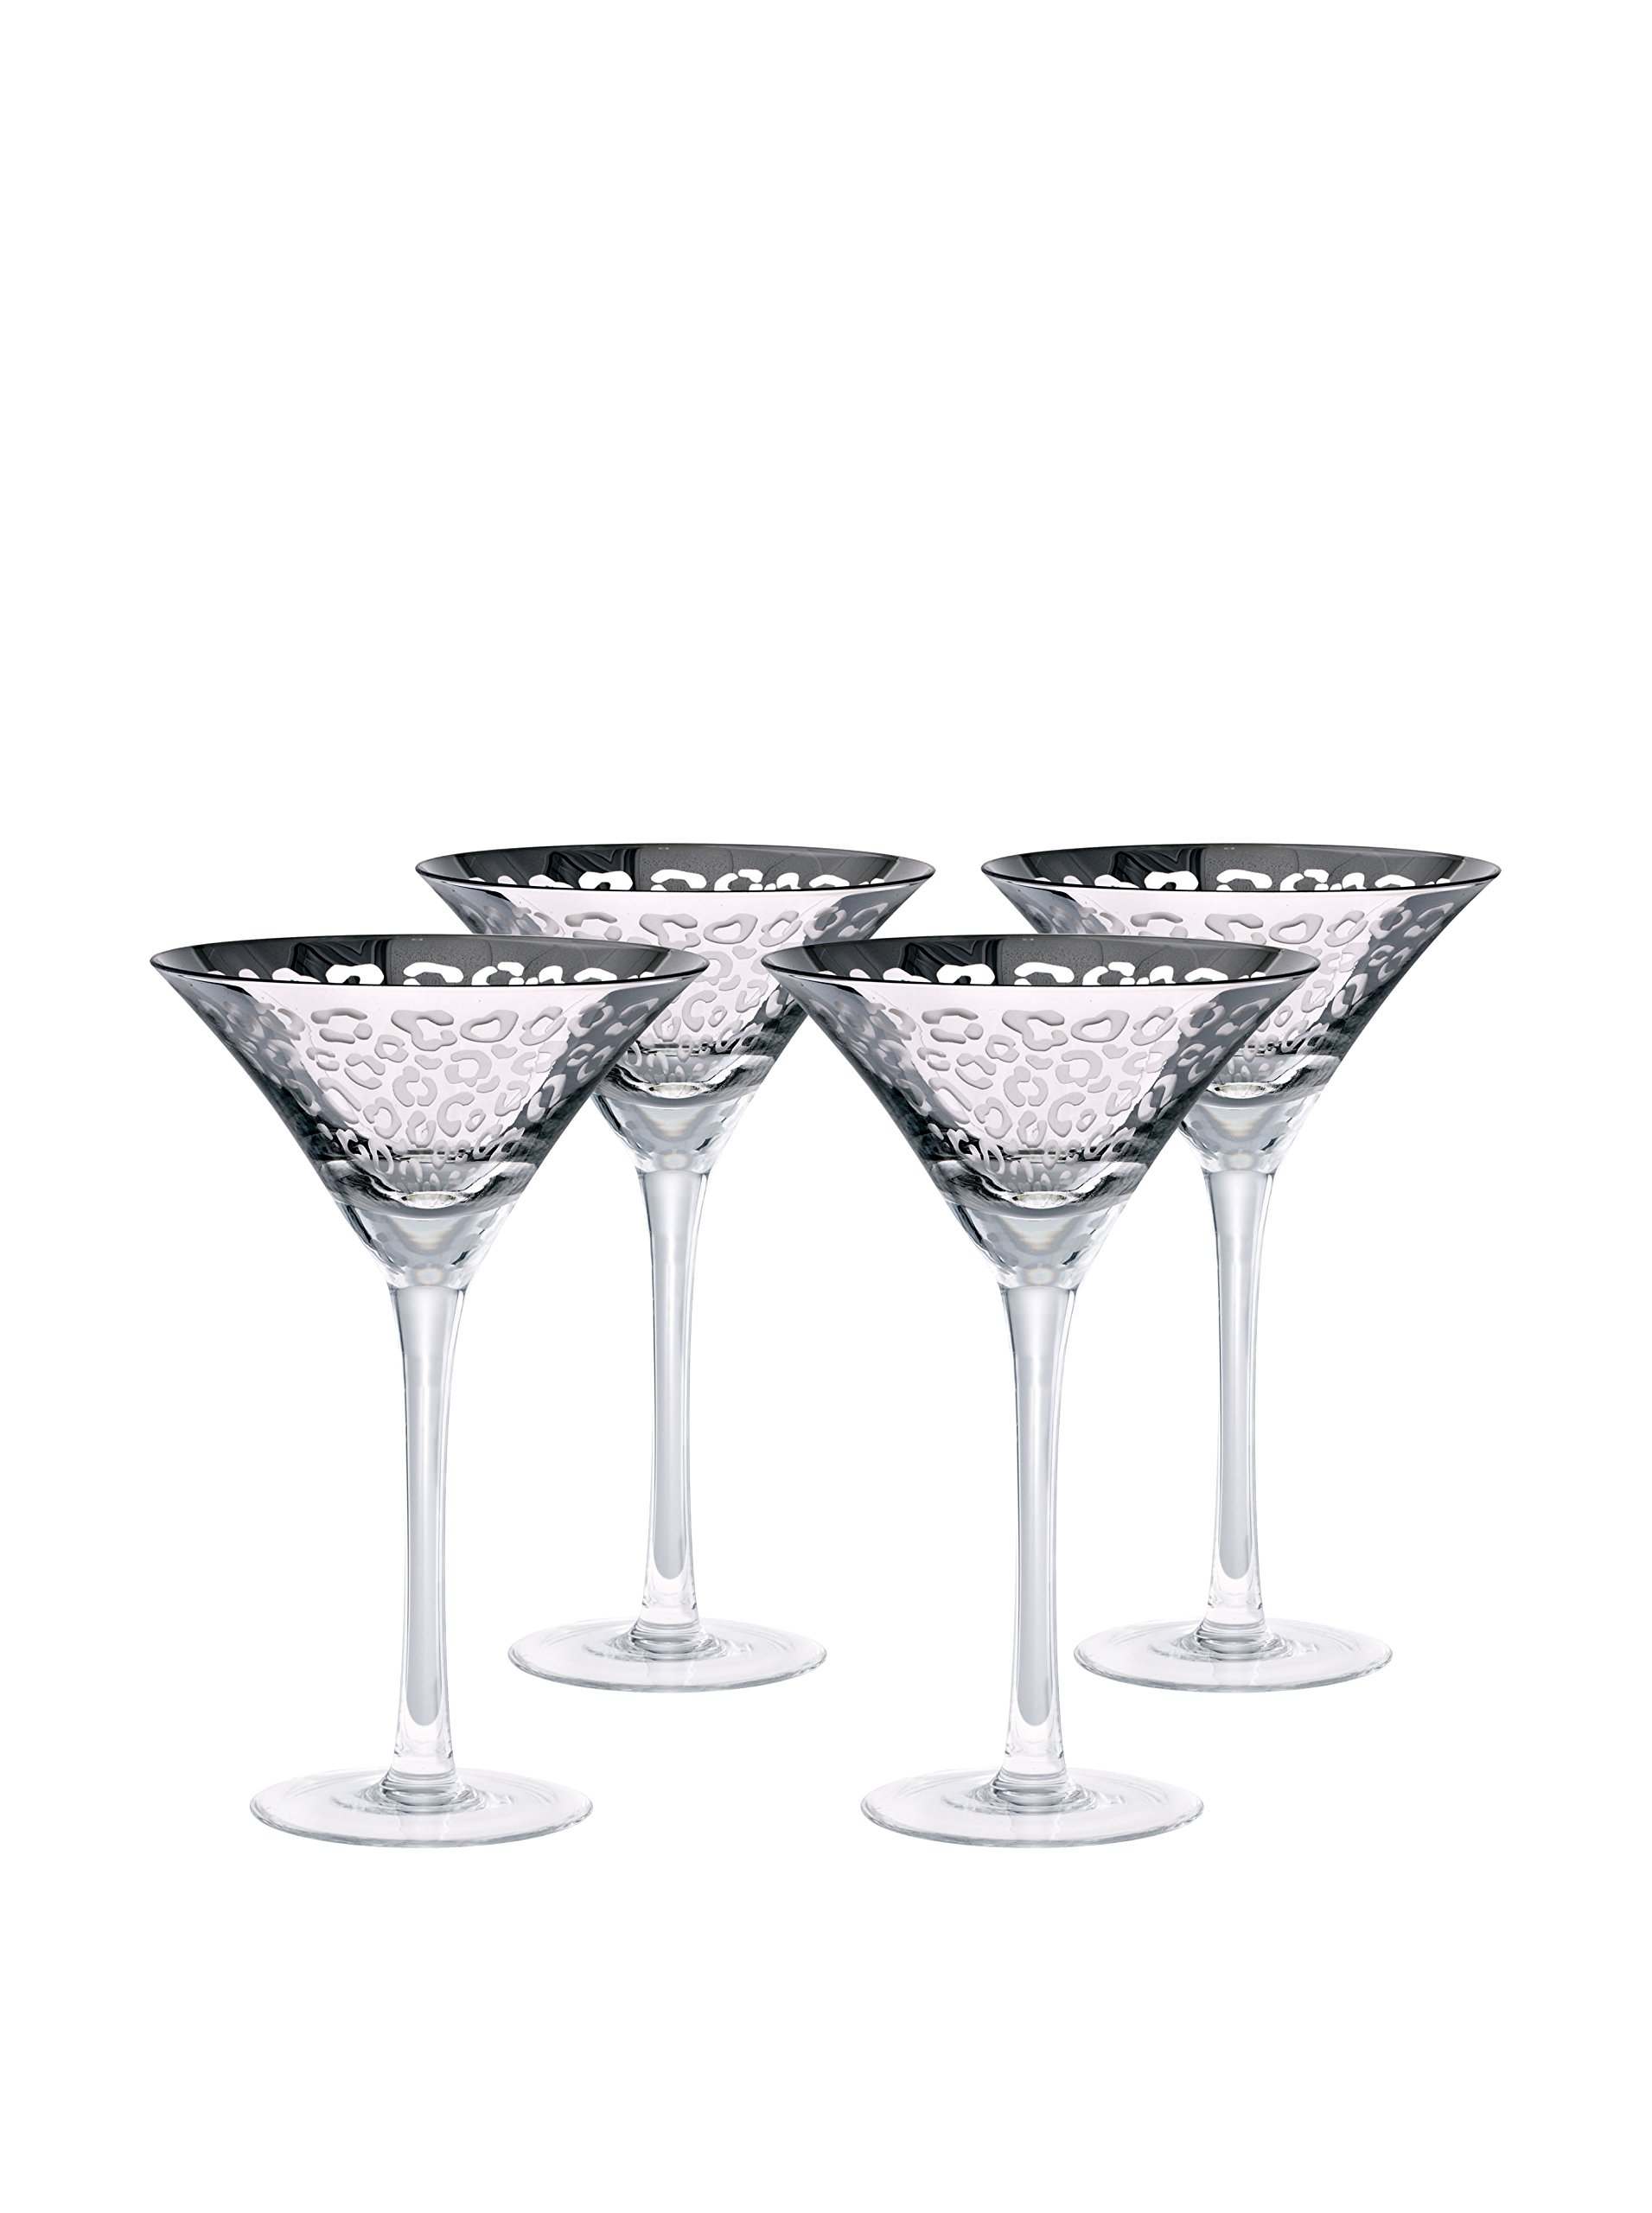 Artland 51162B Leopard martini Glass, 8 oz, Silver, Set of 4